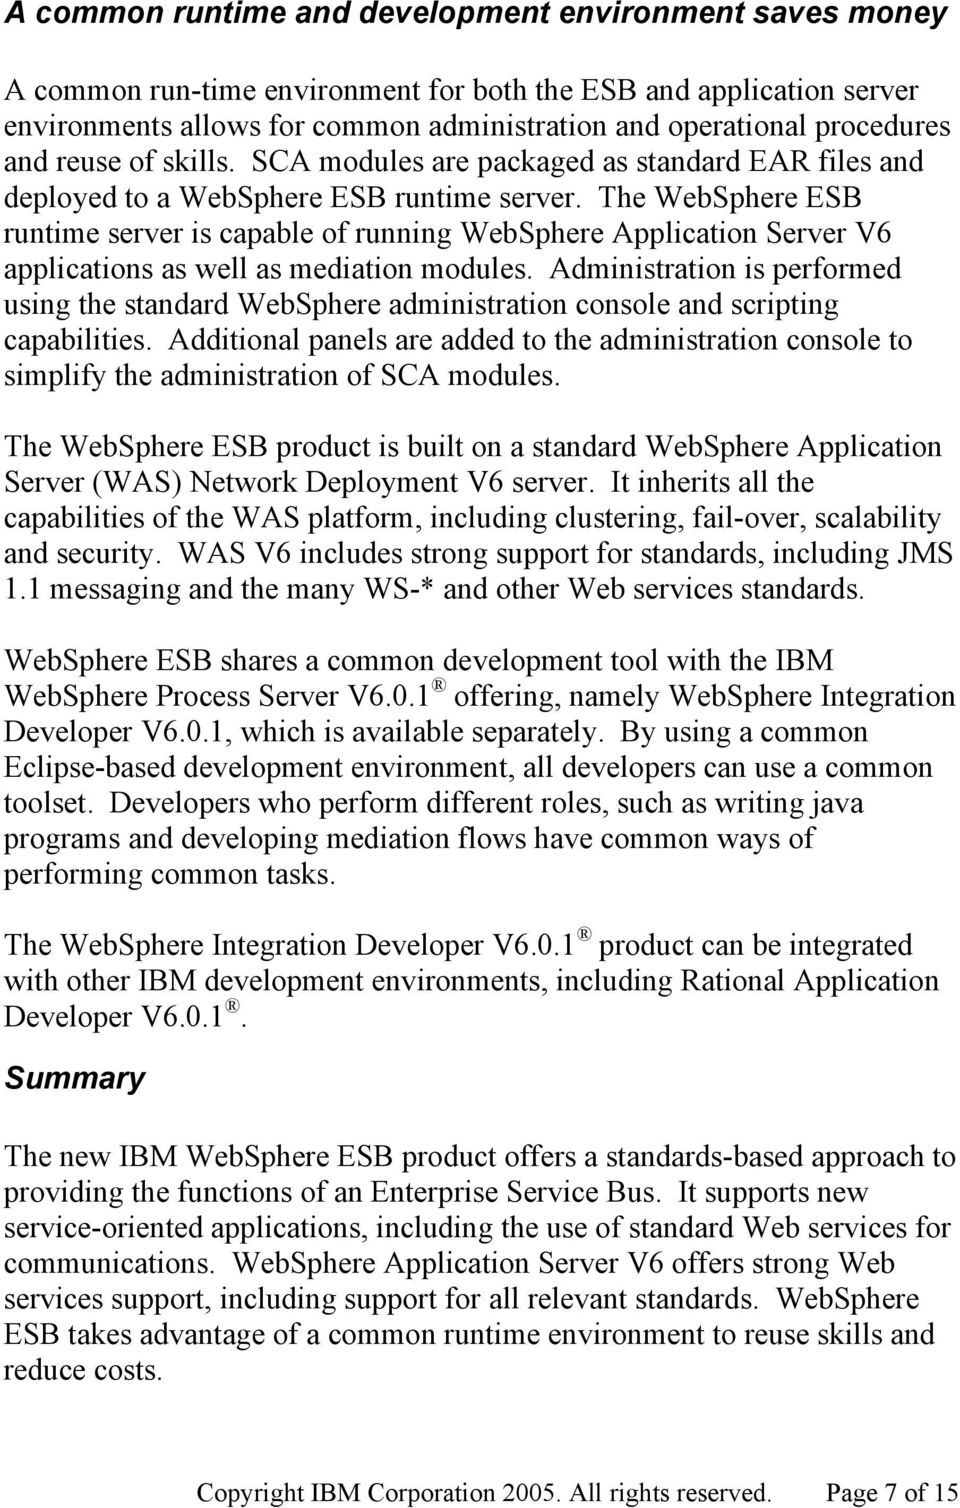 The WebSphere ESB runtime server is capable of running WebSphere Application Server V6 applications as well as mediation modules.